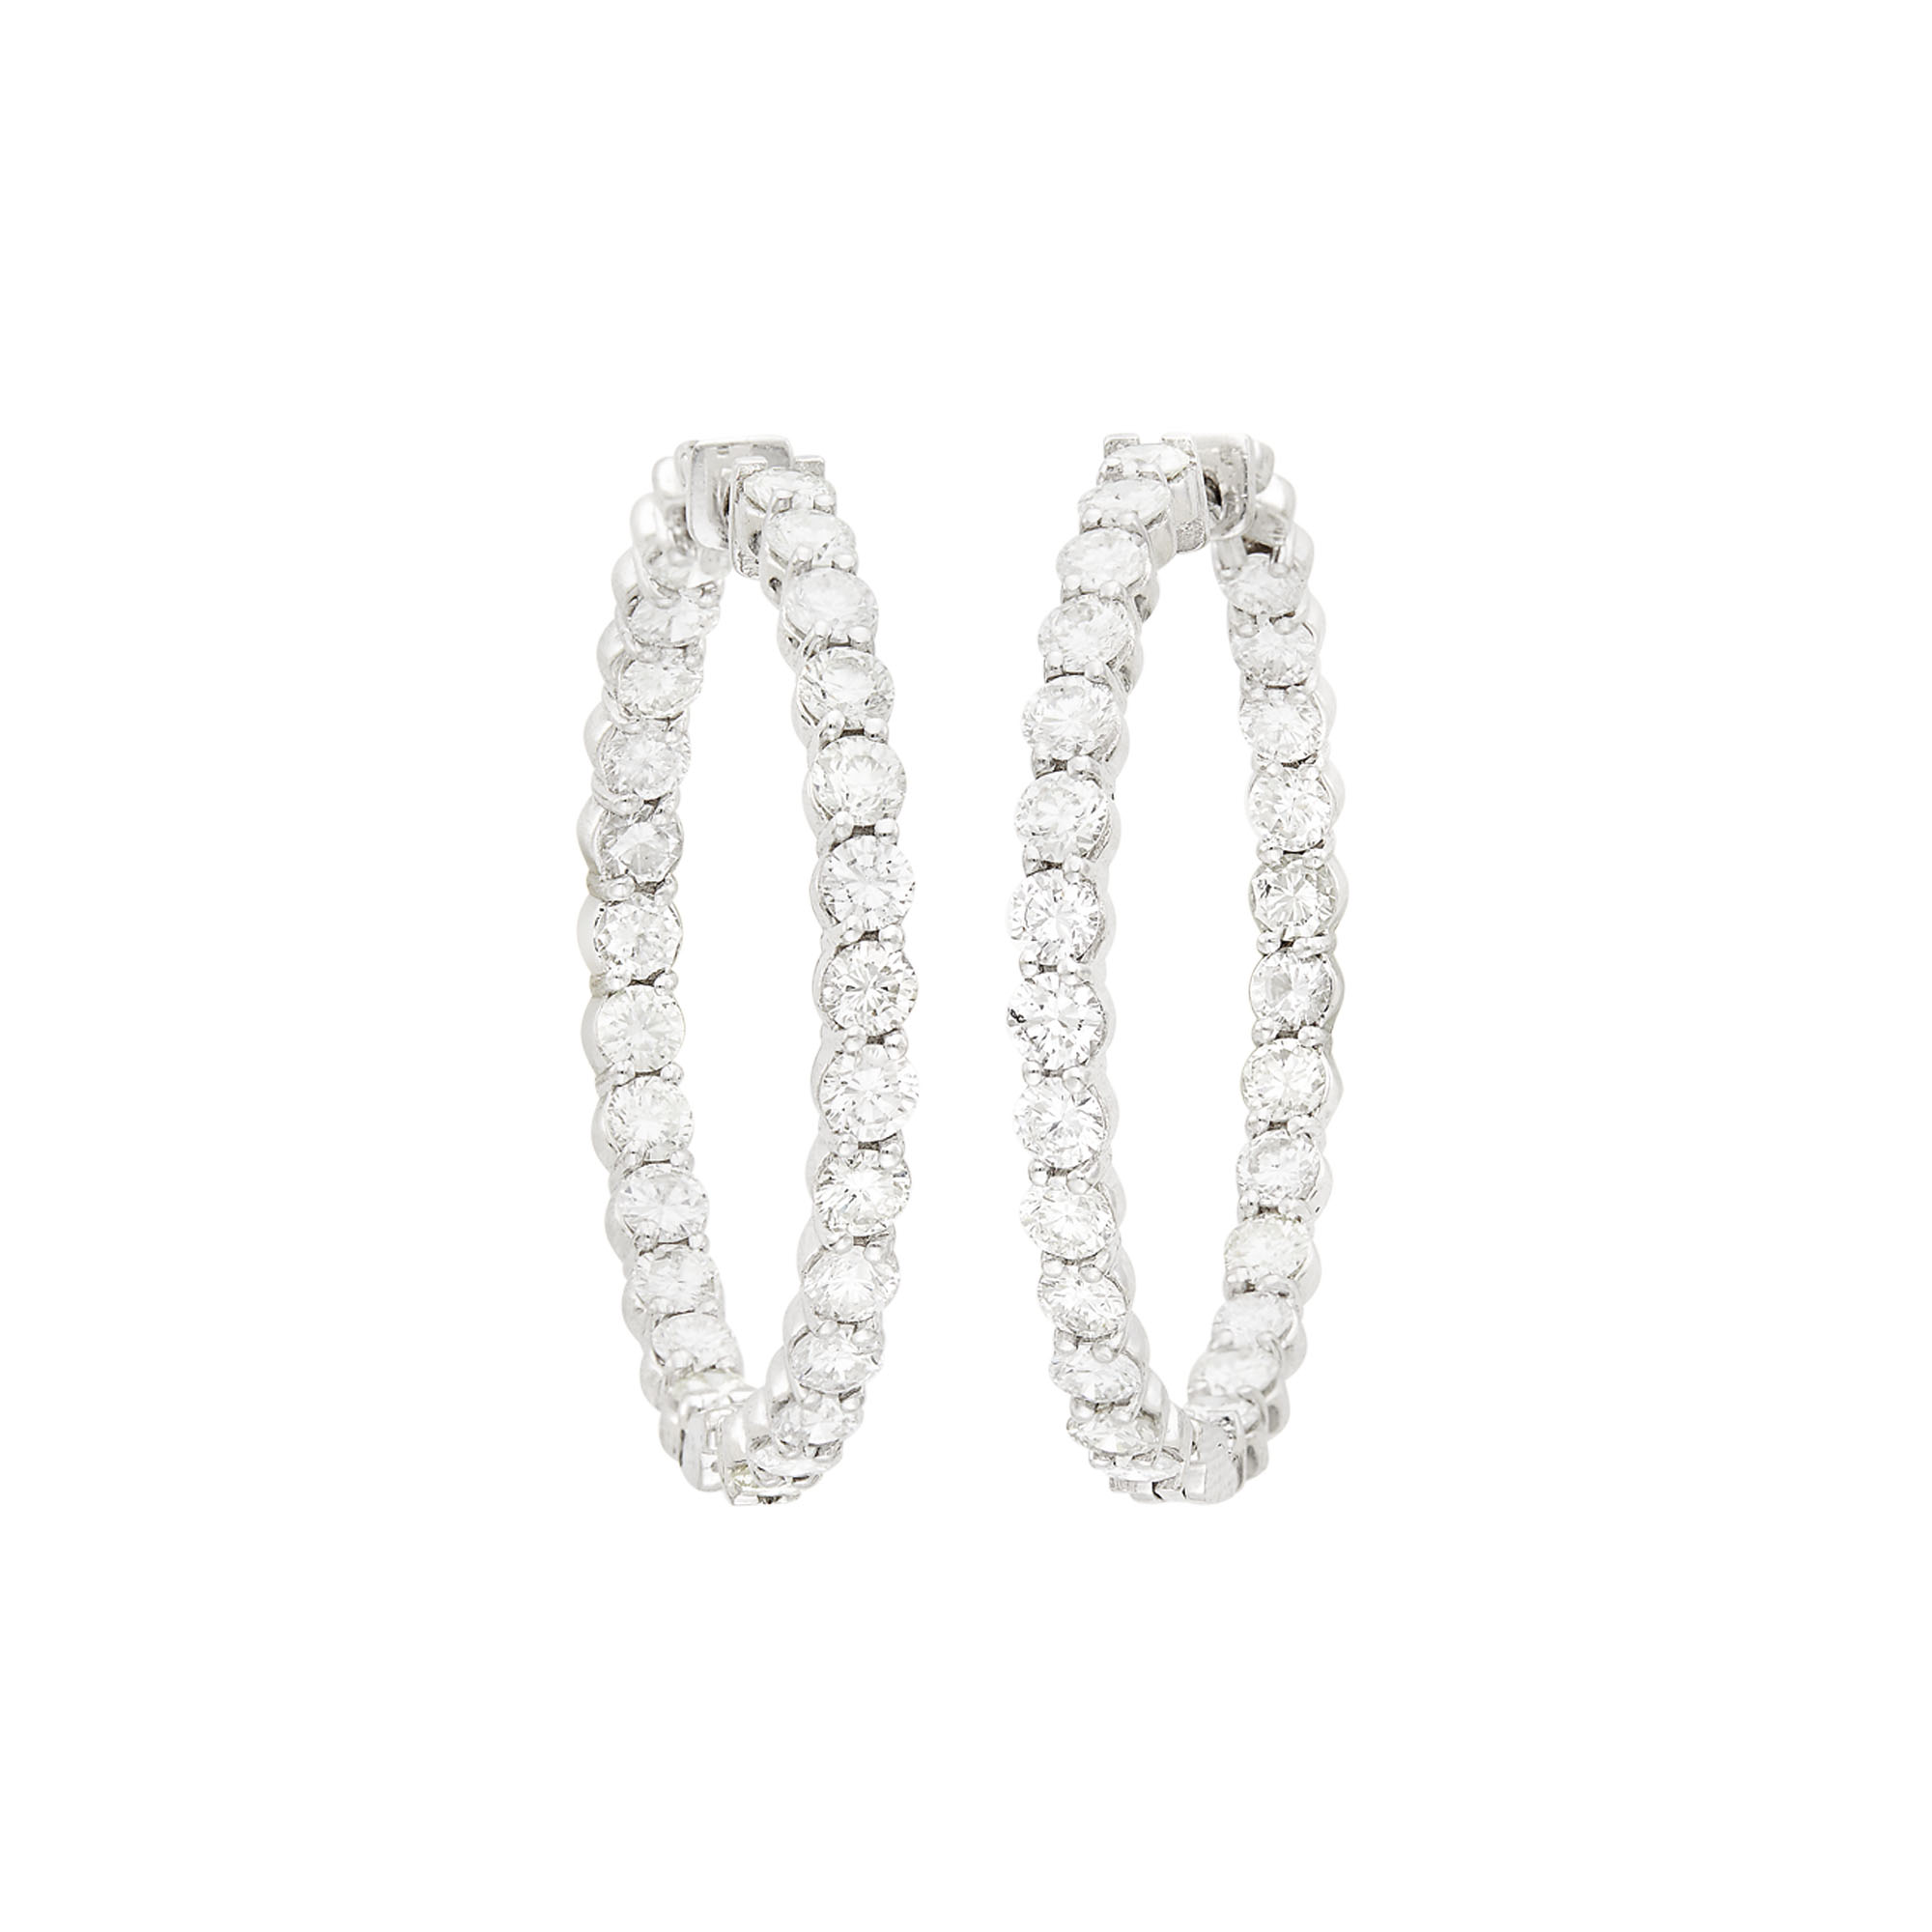 Lot image - Pair of White Gold and Diamond Hoop Earrings